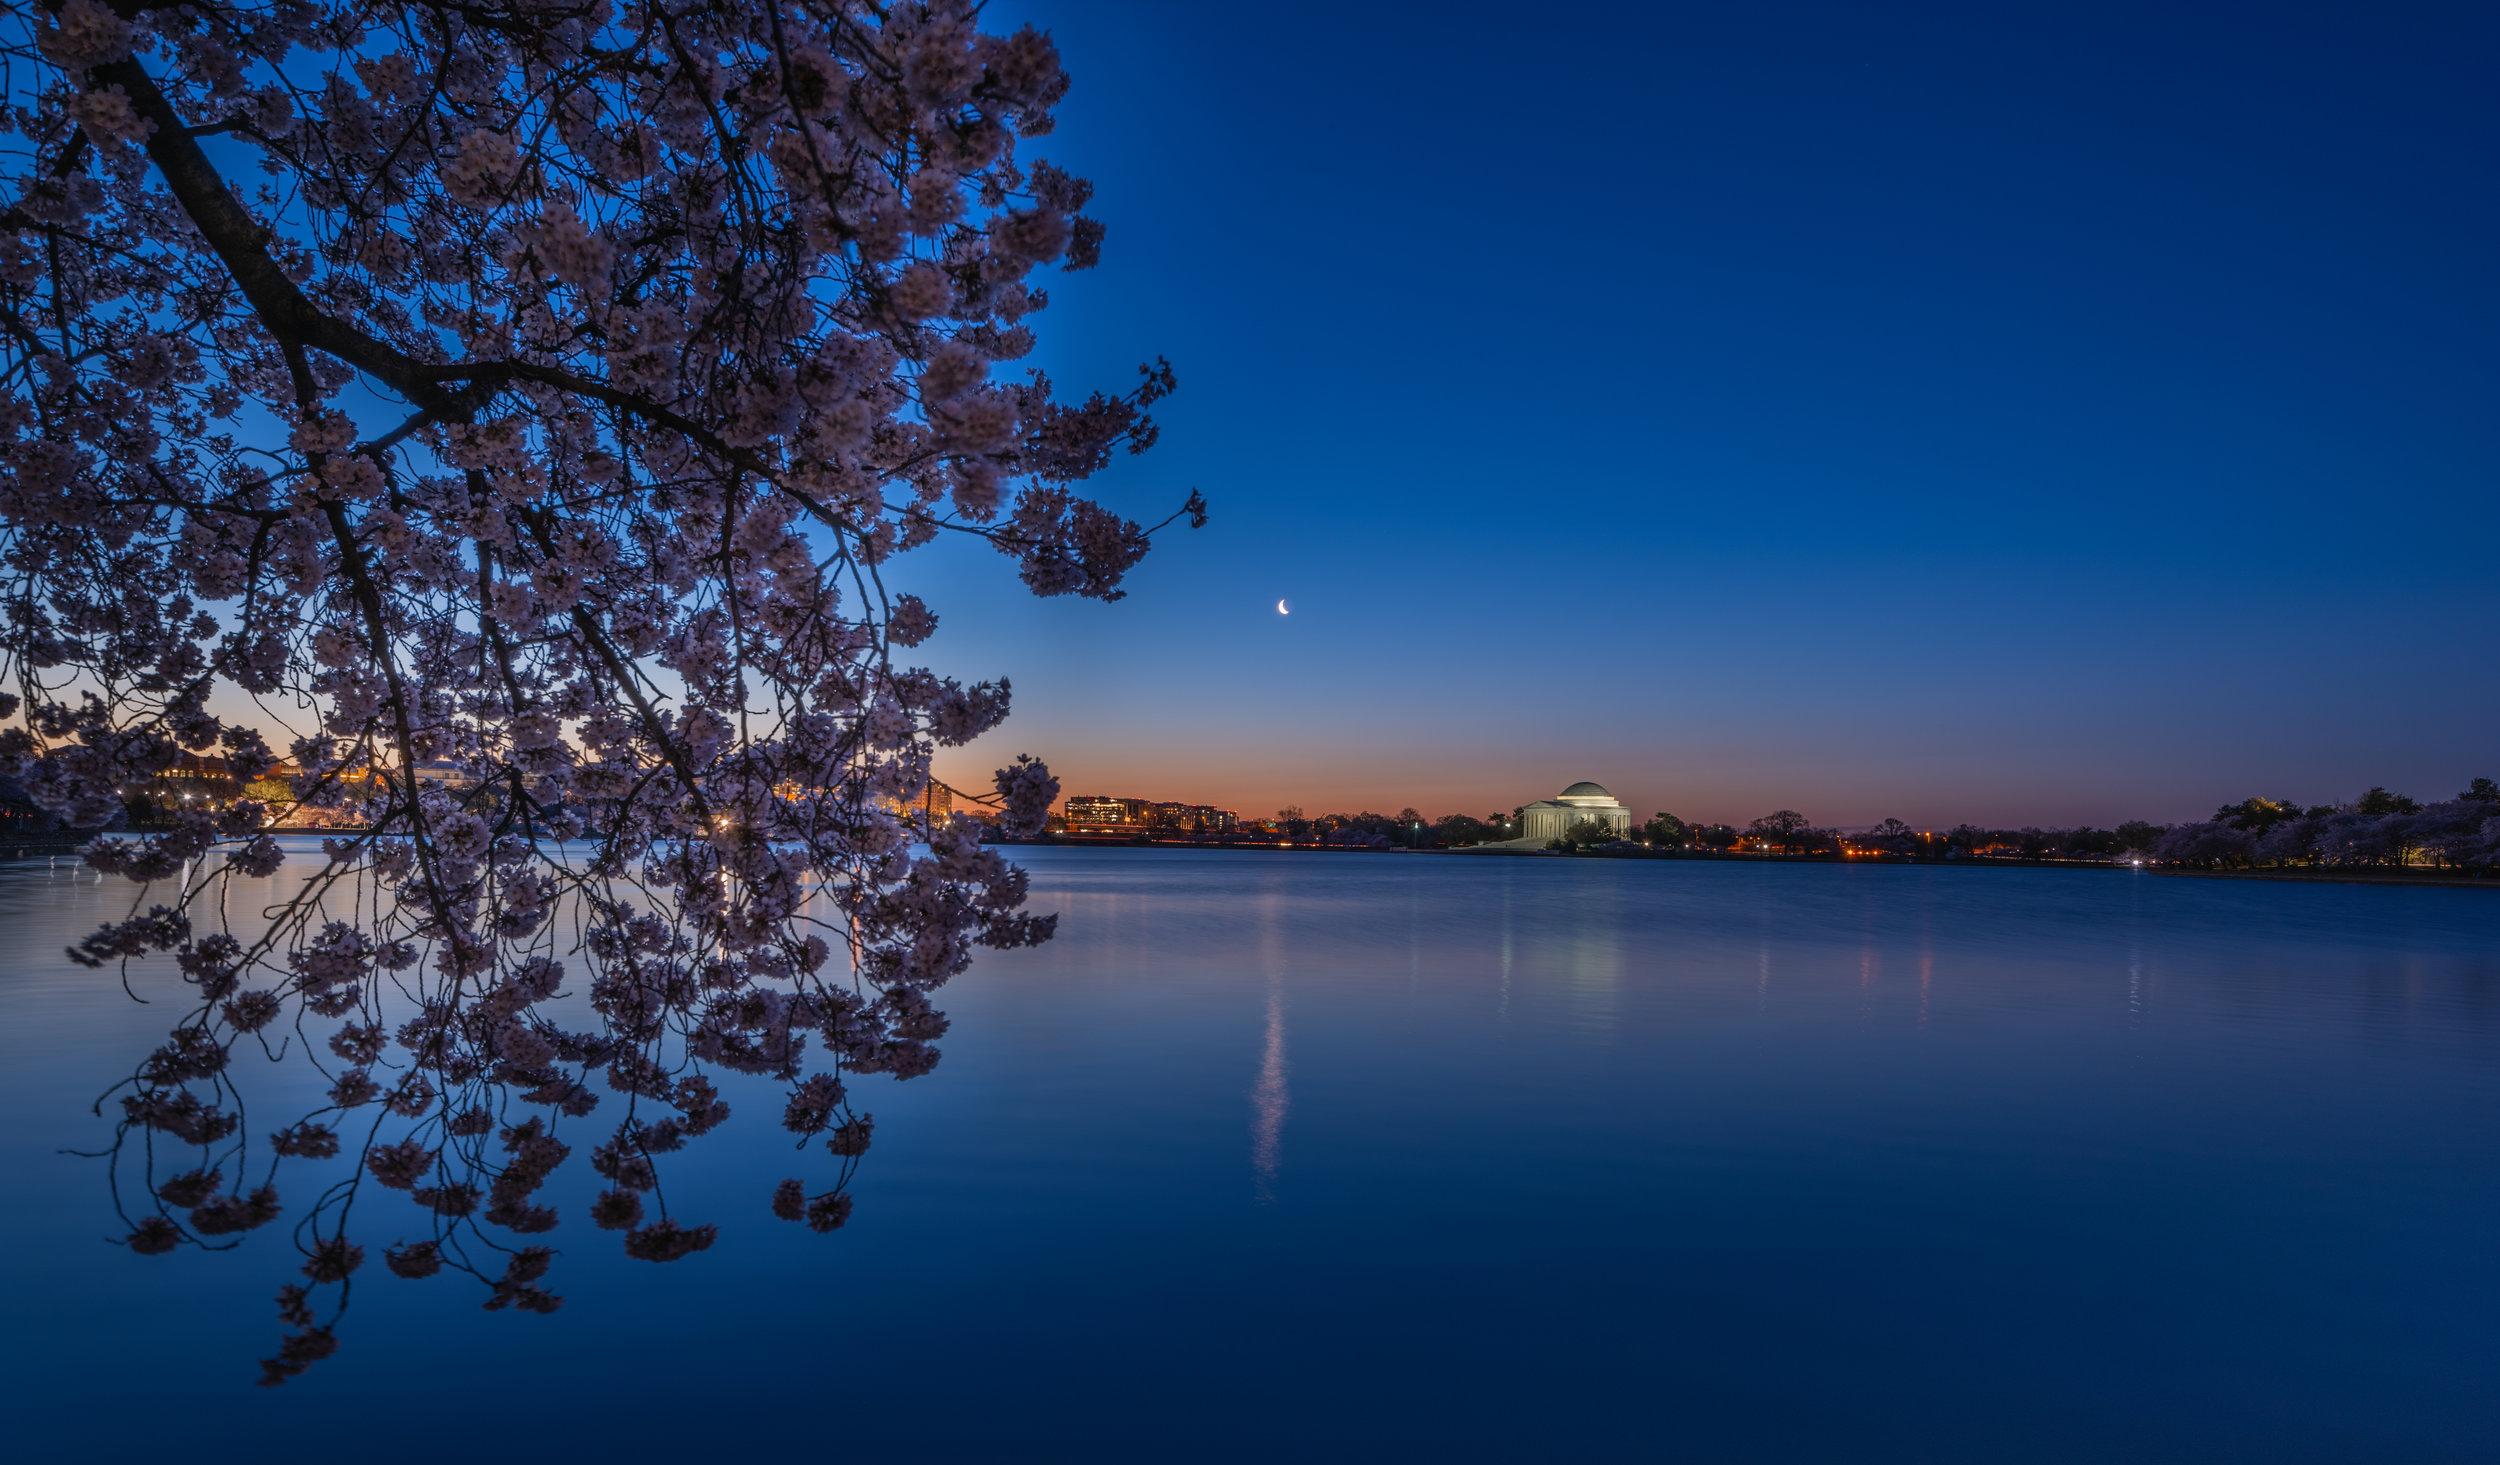 Cherry Blossom and The Blue Hour (click the image to view full size)